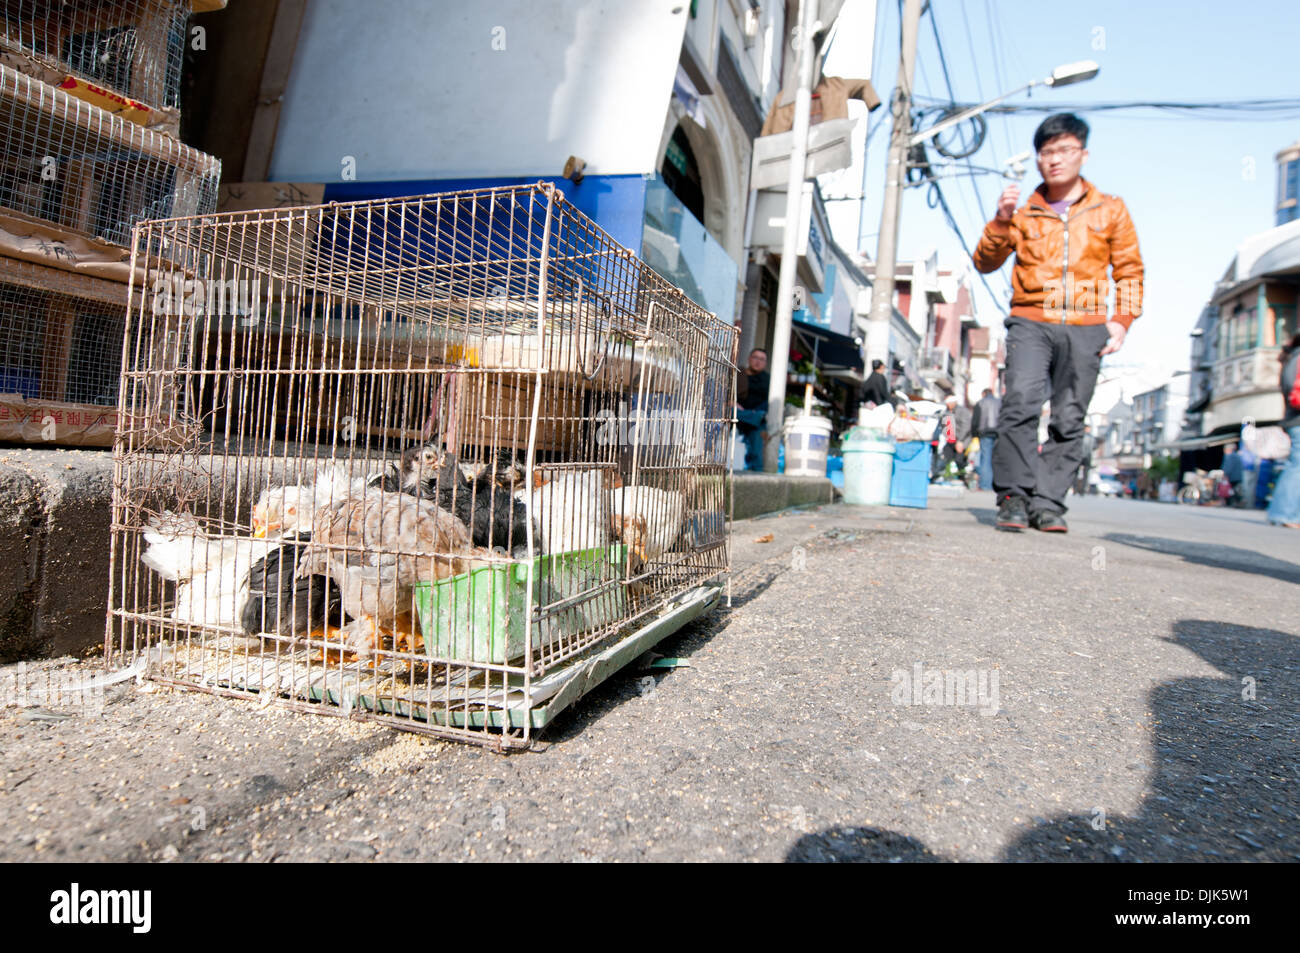 Poultry for sale at Jiangyin Road in Shanghai, China - Stock Image